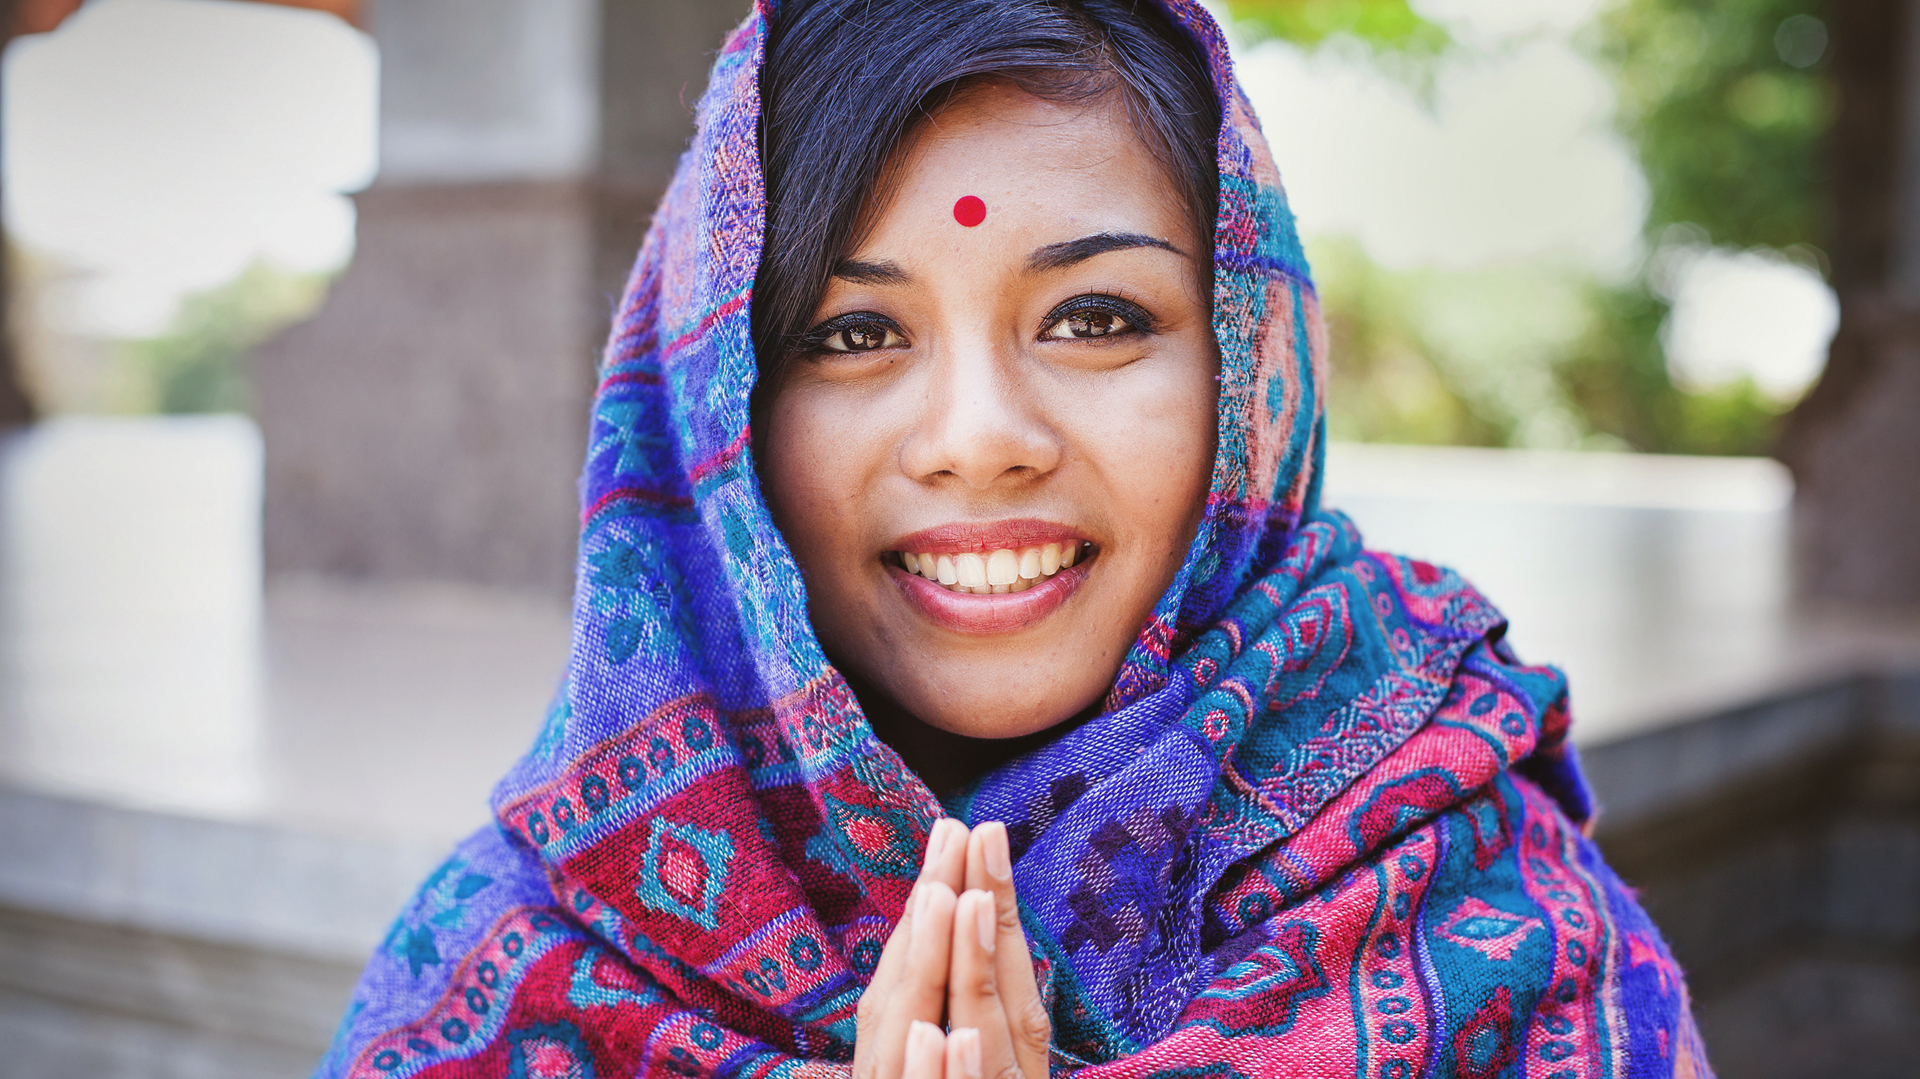 escondido hindu single women This is how i want to get married everything you need to know about dating an indian woman in 7 minutes it's a long one )  warning: these are generaliz.